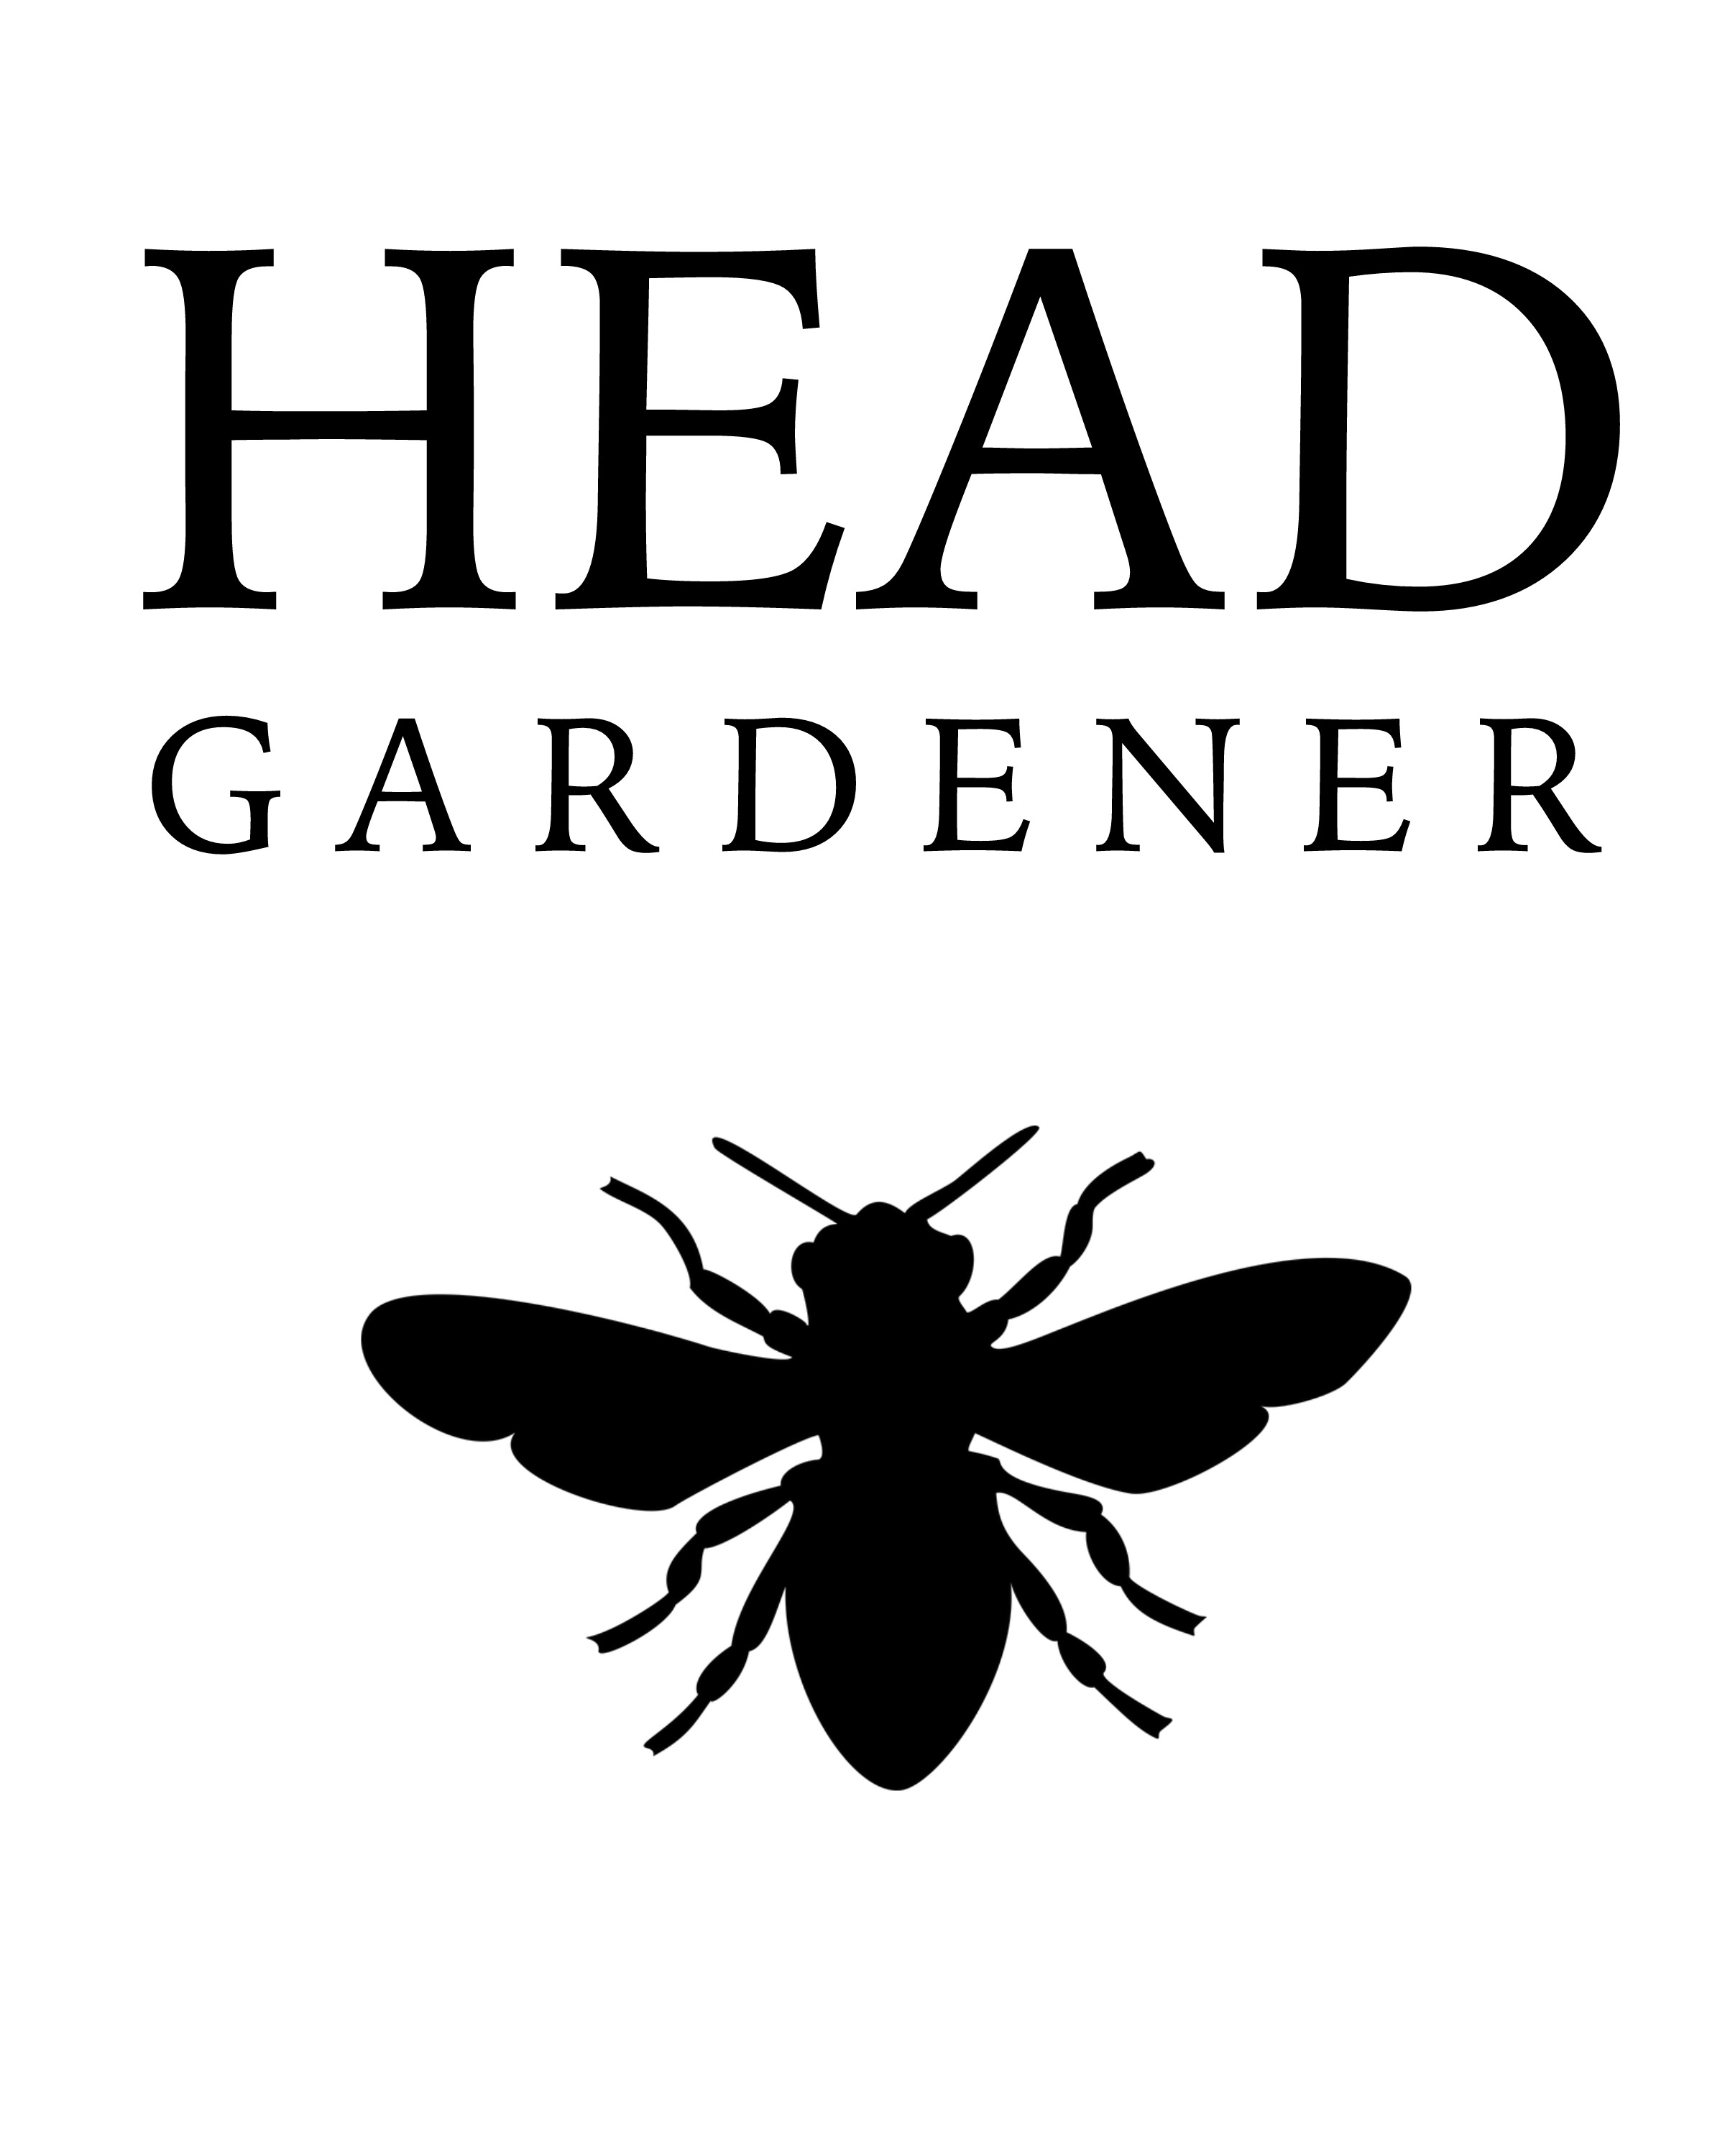 HEADGARDENERPRINT